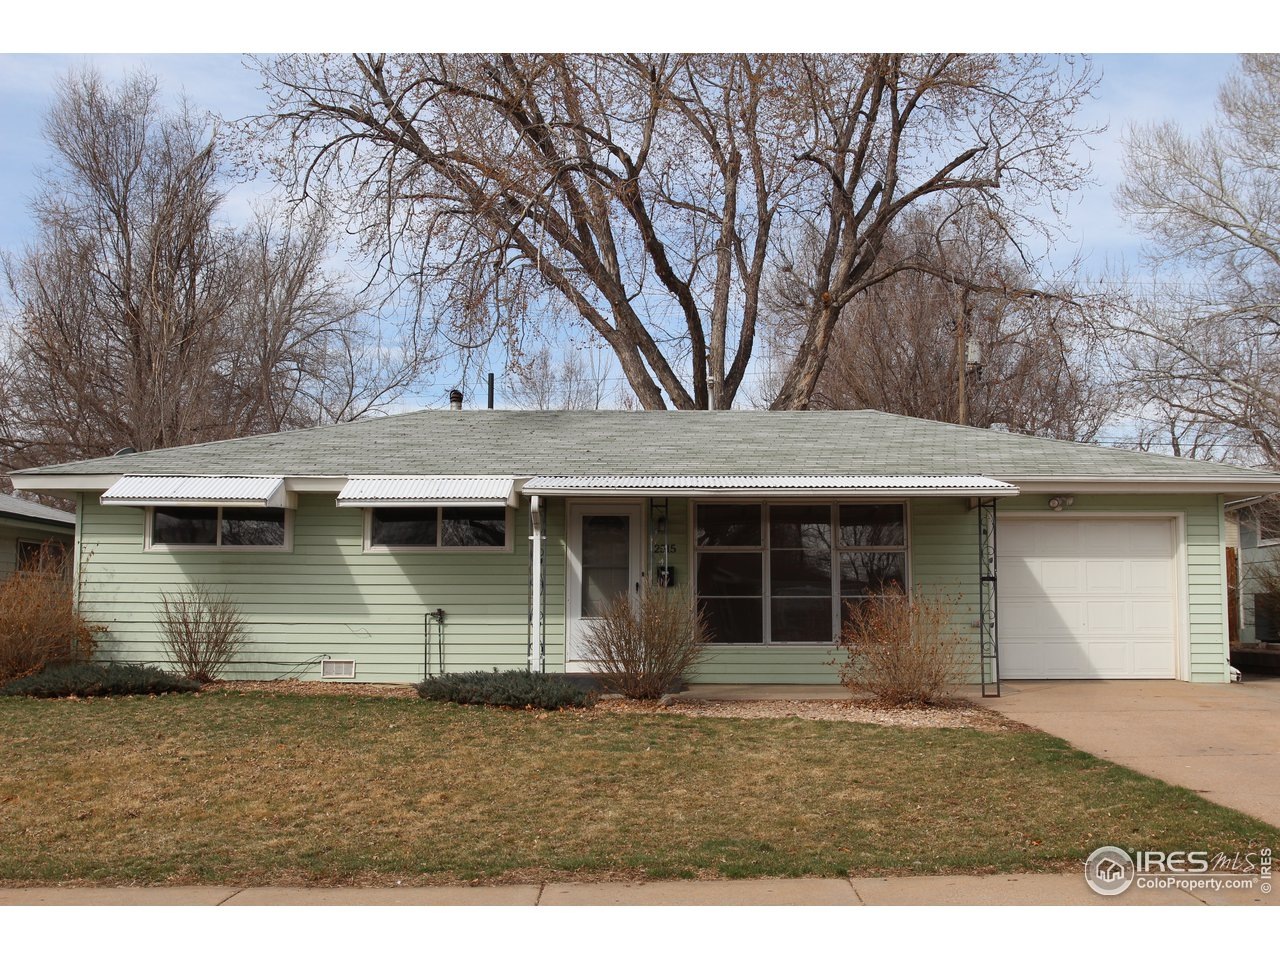 2515 16 Ave Loveland Home Listings - Team Cook Real Estate